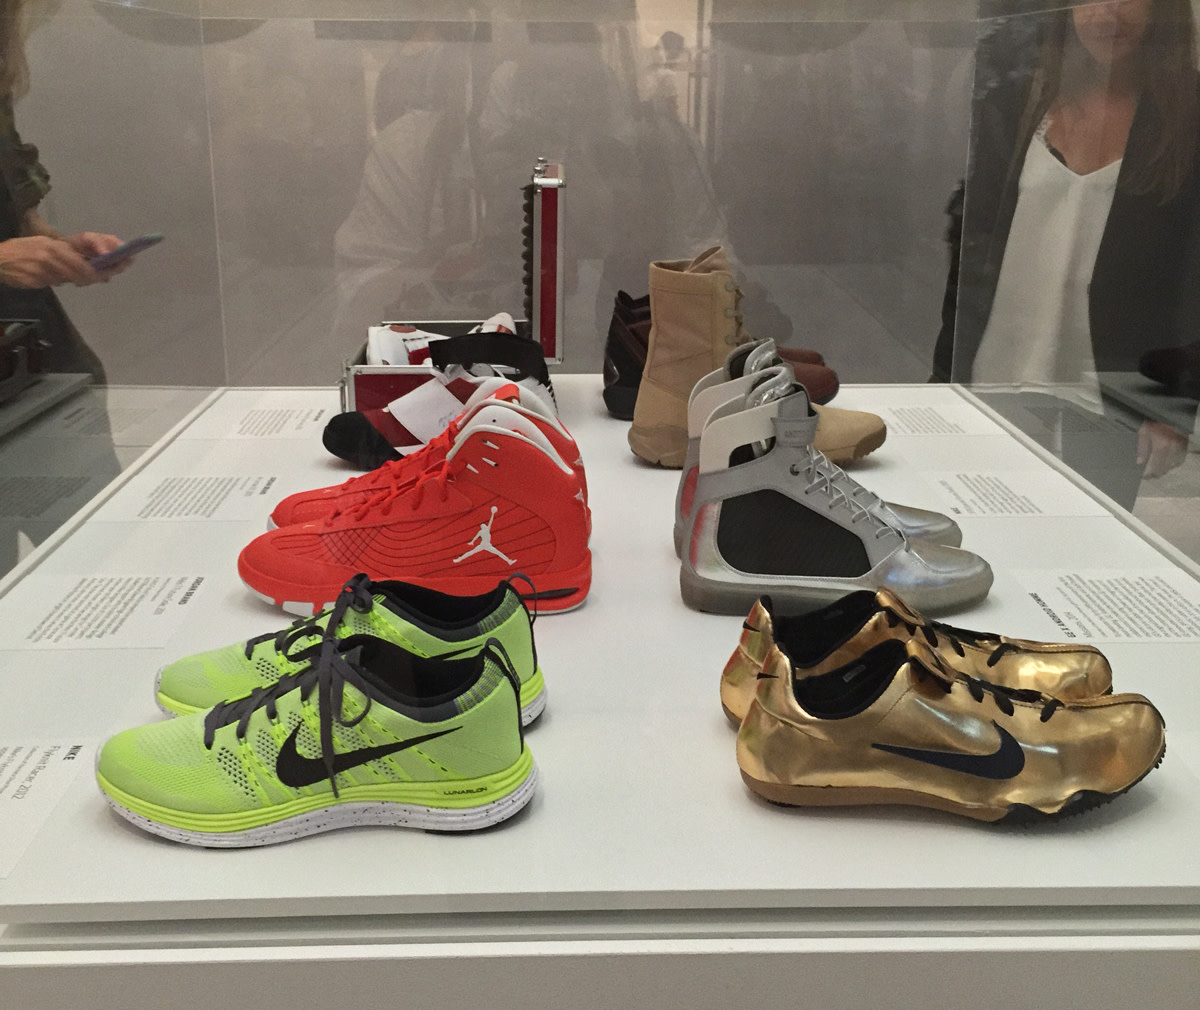 rise-of-sneaker-culture-exhibit-24